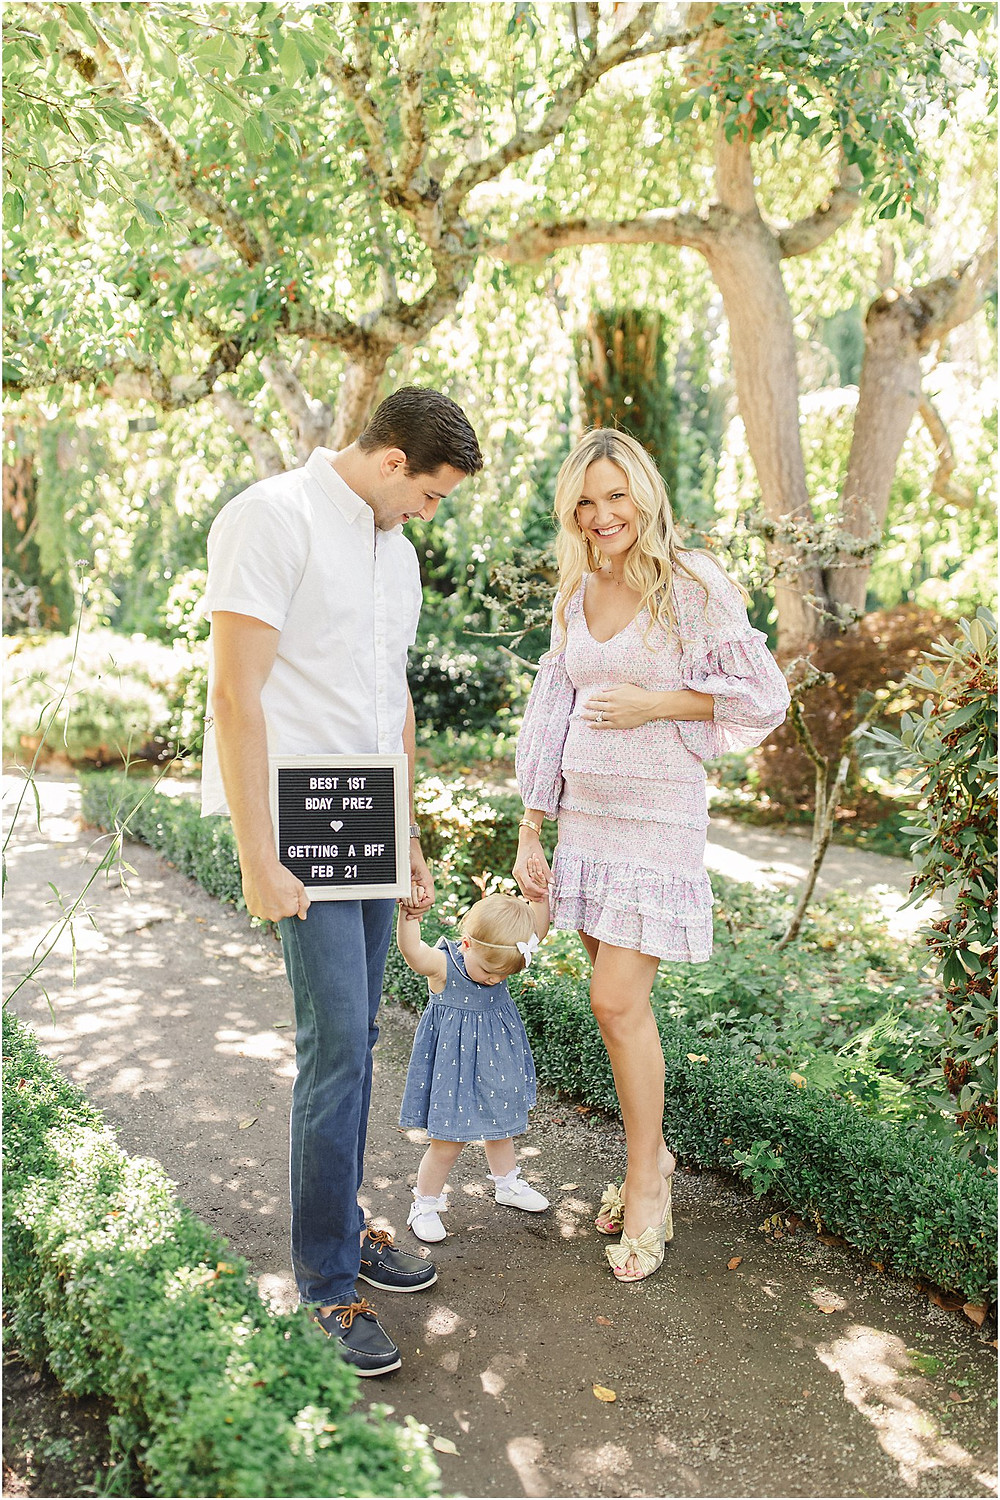 South bay maternity session at Fioli Gardens. Bright timeless lifestyle editorial natural photography by San Francisco Bay Area photographer Torrey Fox